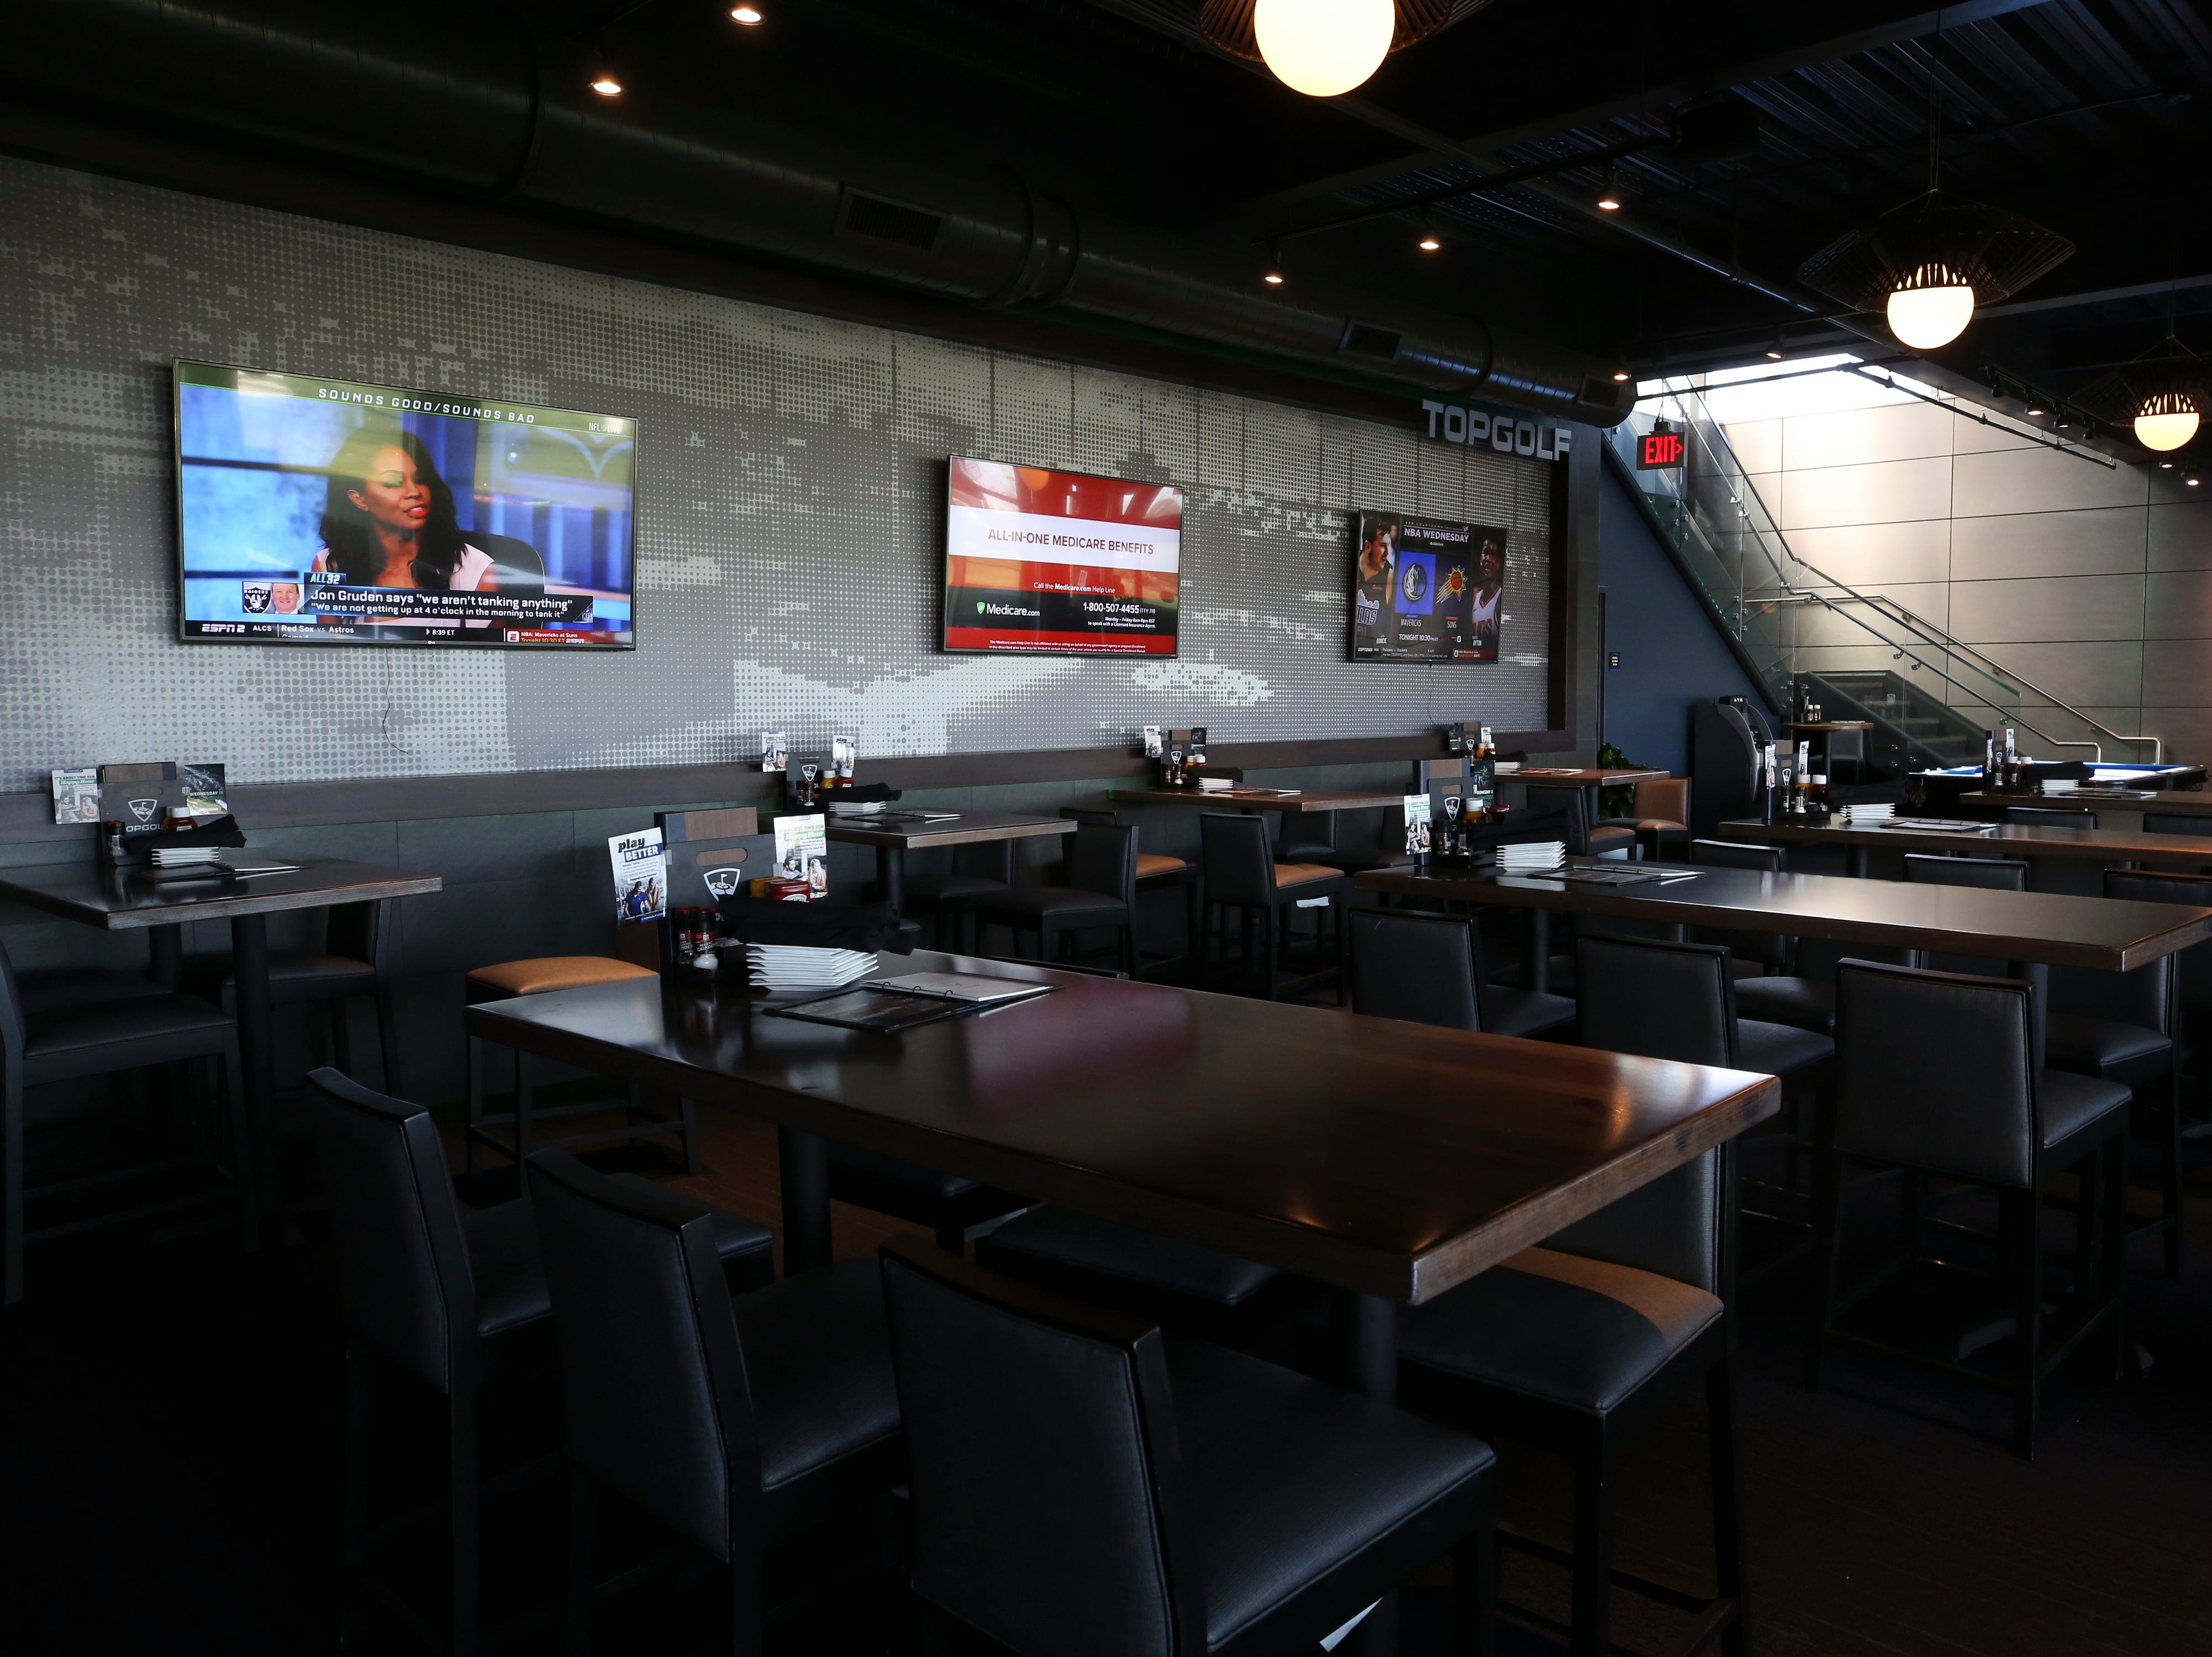 A lounge at the Topgolf outside of Cincinnati, Ohio.  Topgolf is proposing to build a facility at the Oxmoor Center in Louisville as they wait for a decision by the Metro planning commission. 